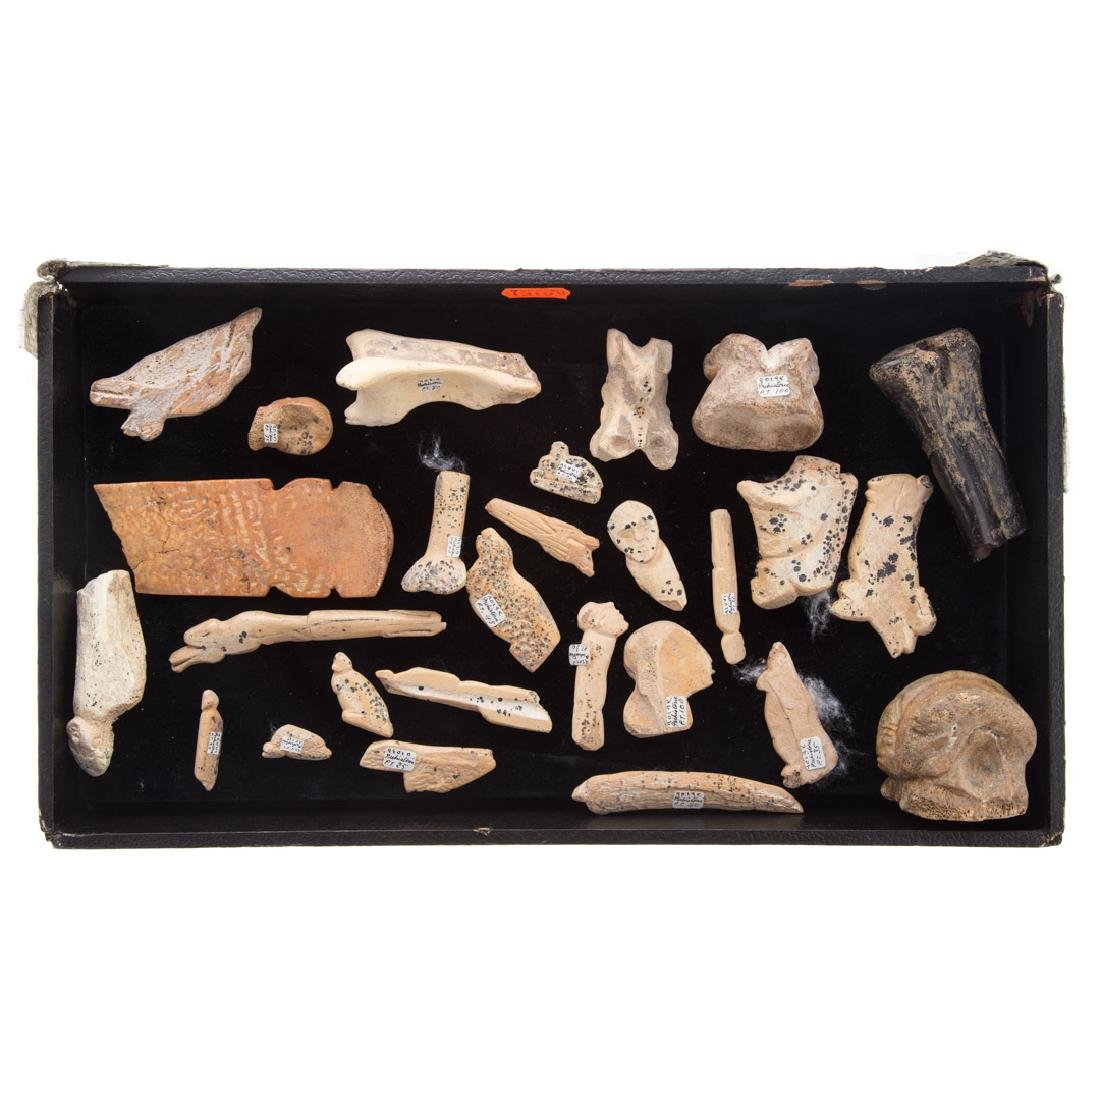 Assortment of ethnographic carved bone objects